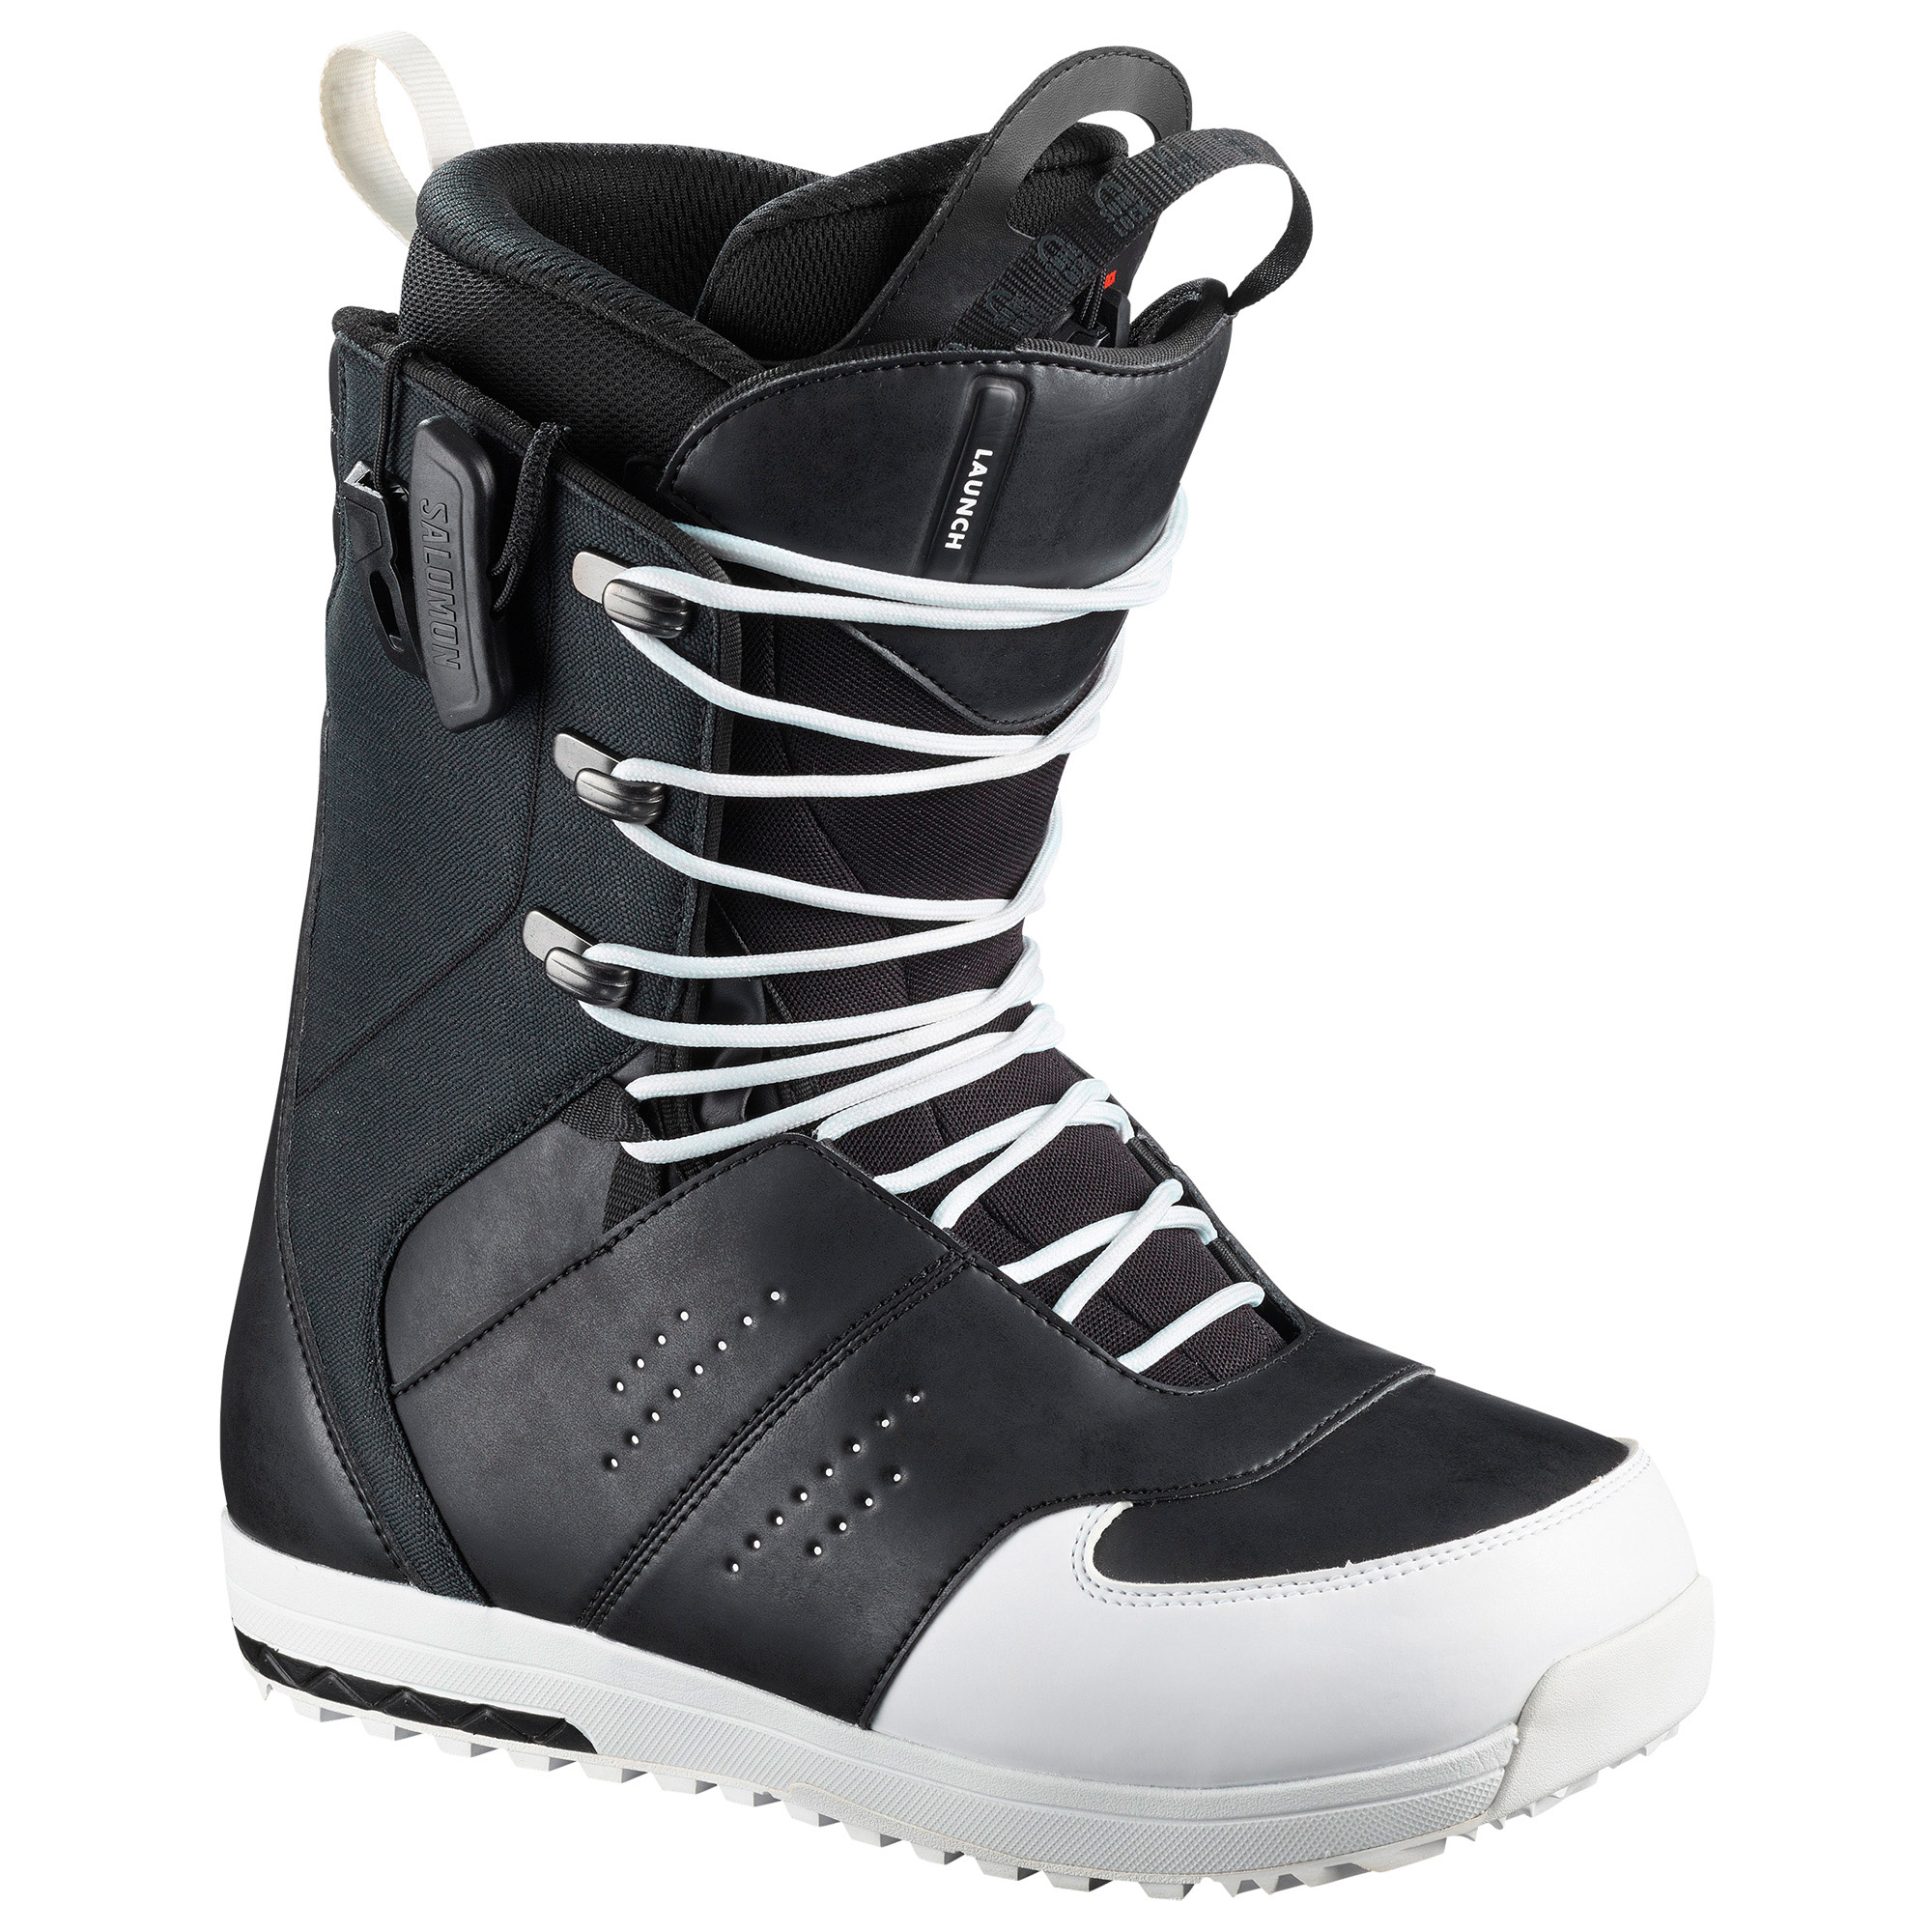 Salomon Launch Lace SJ Black Mens Snowboard Boots